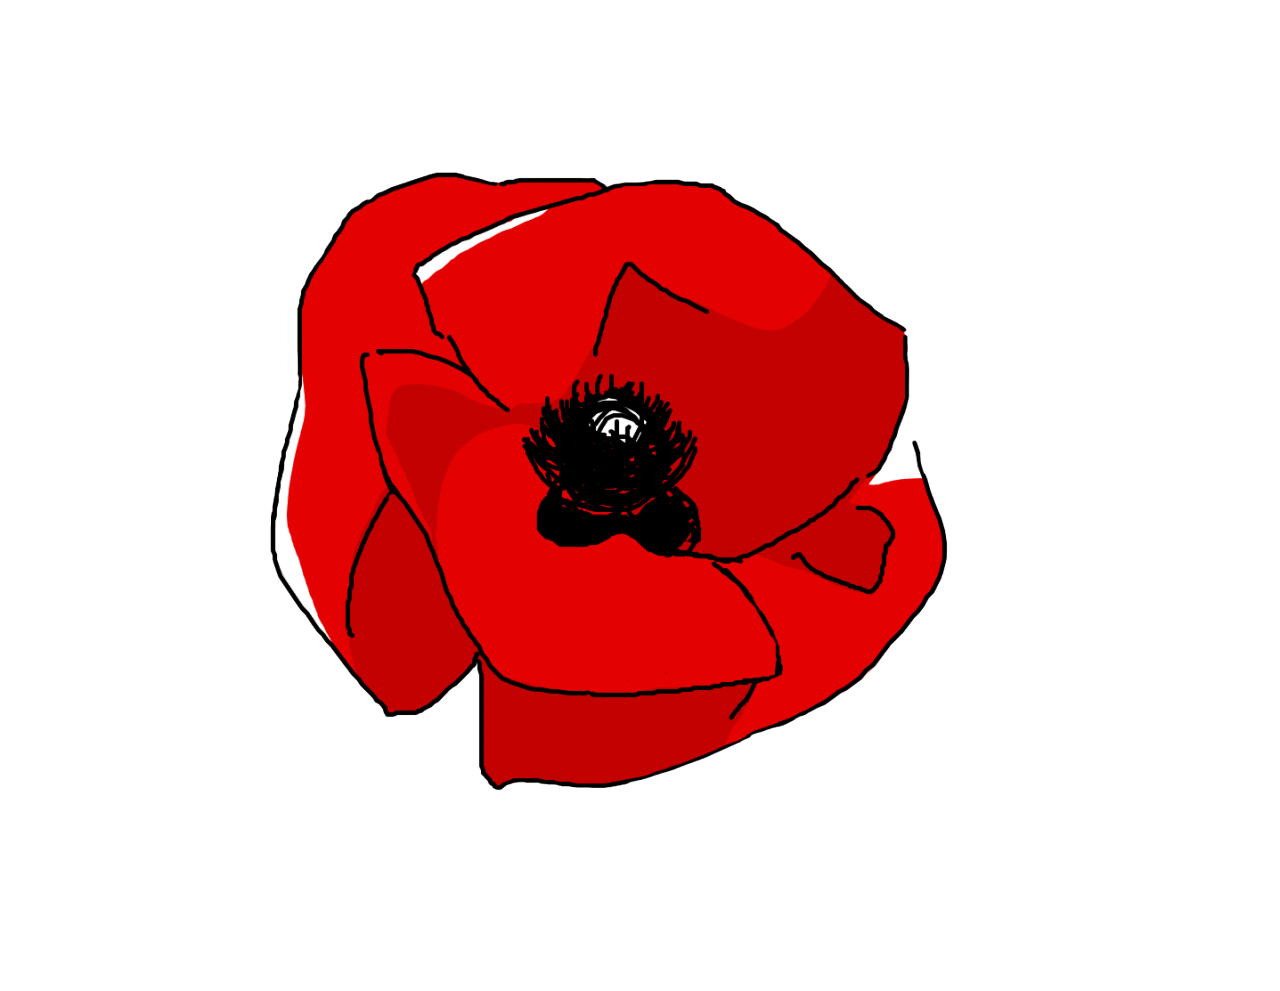 Tamabooty transparent for your. Poppy clipart lest we forget